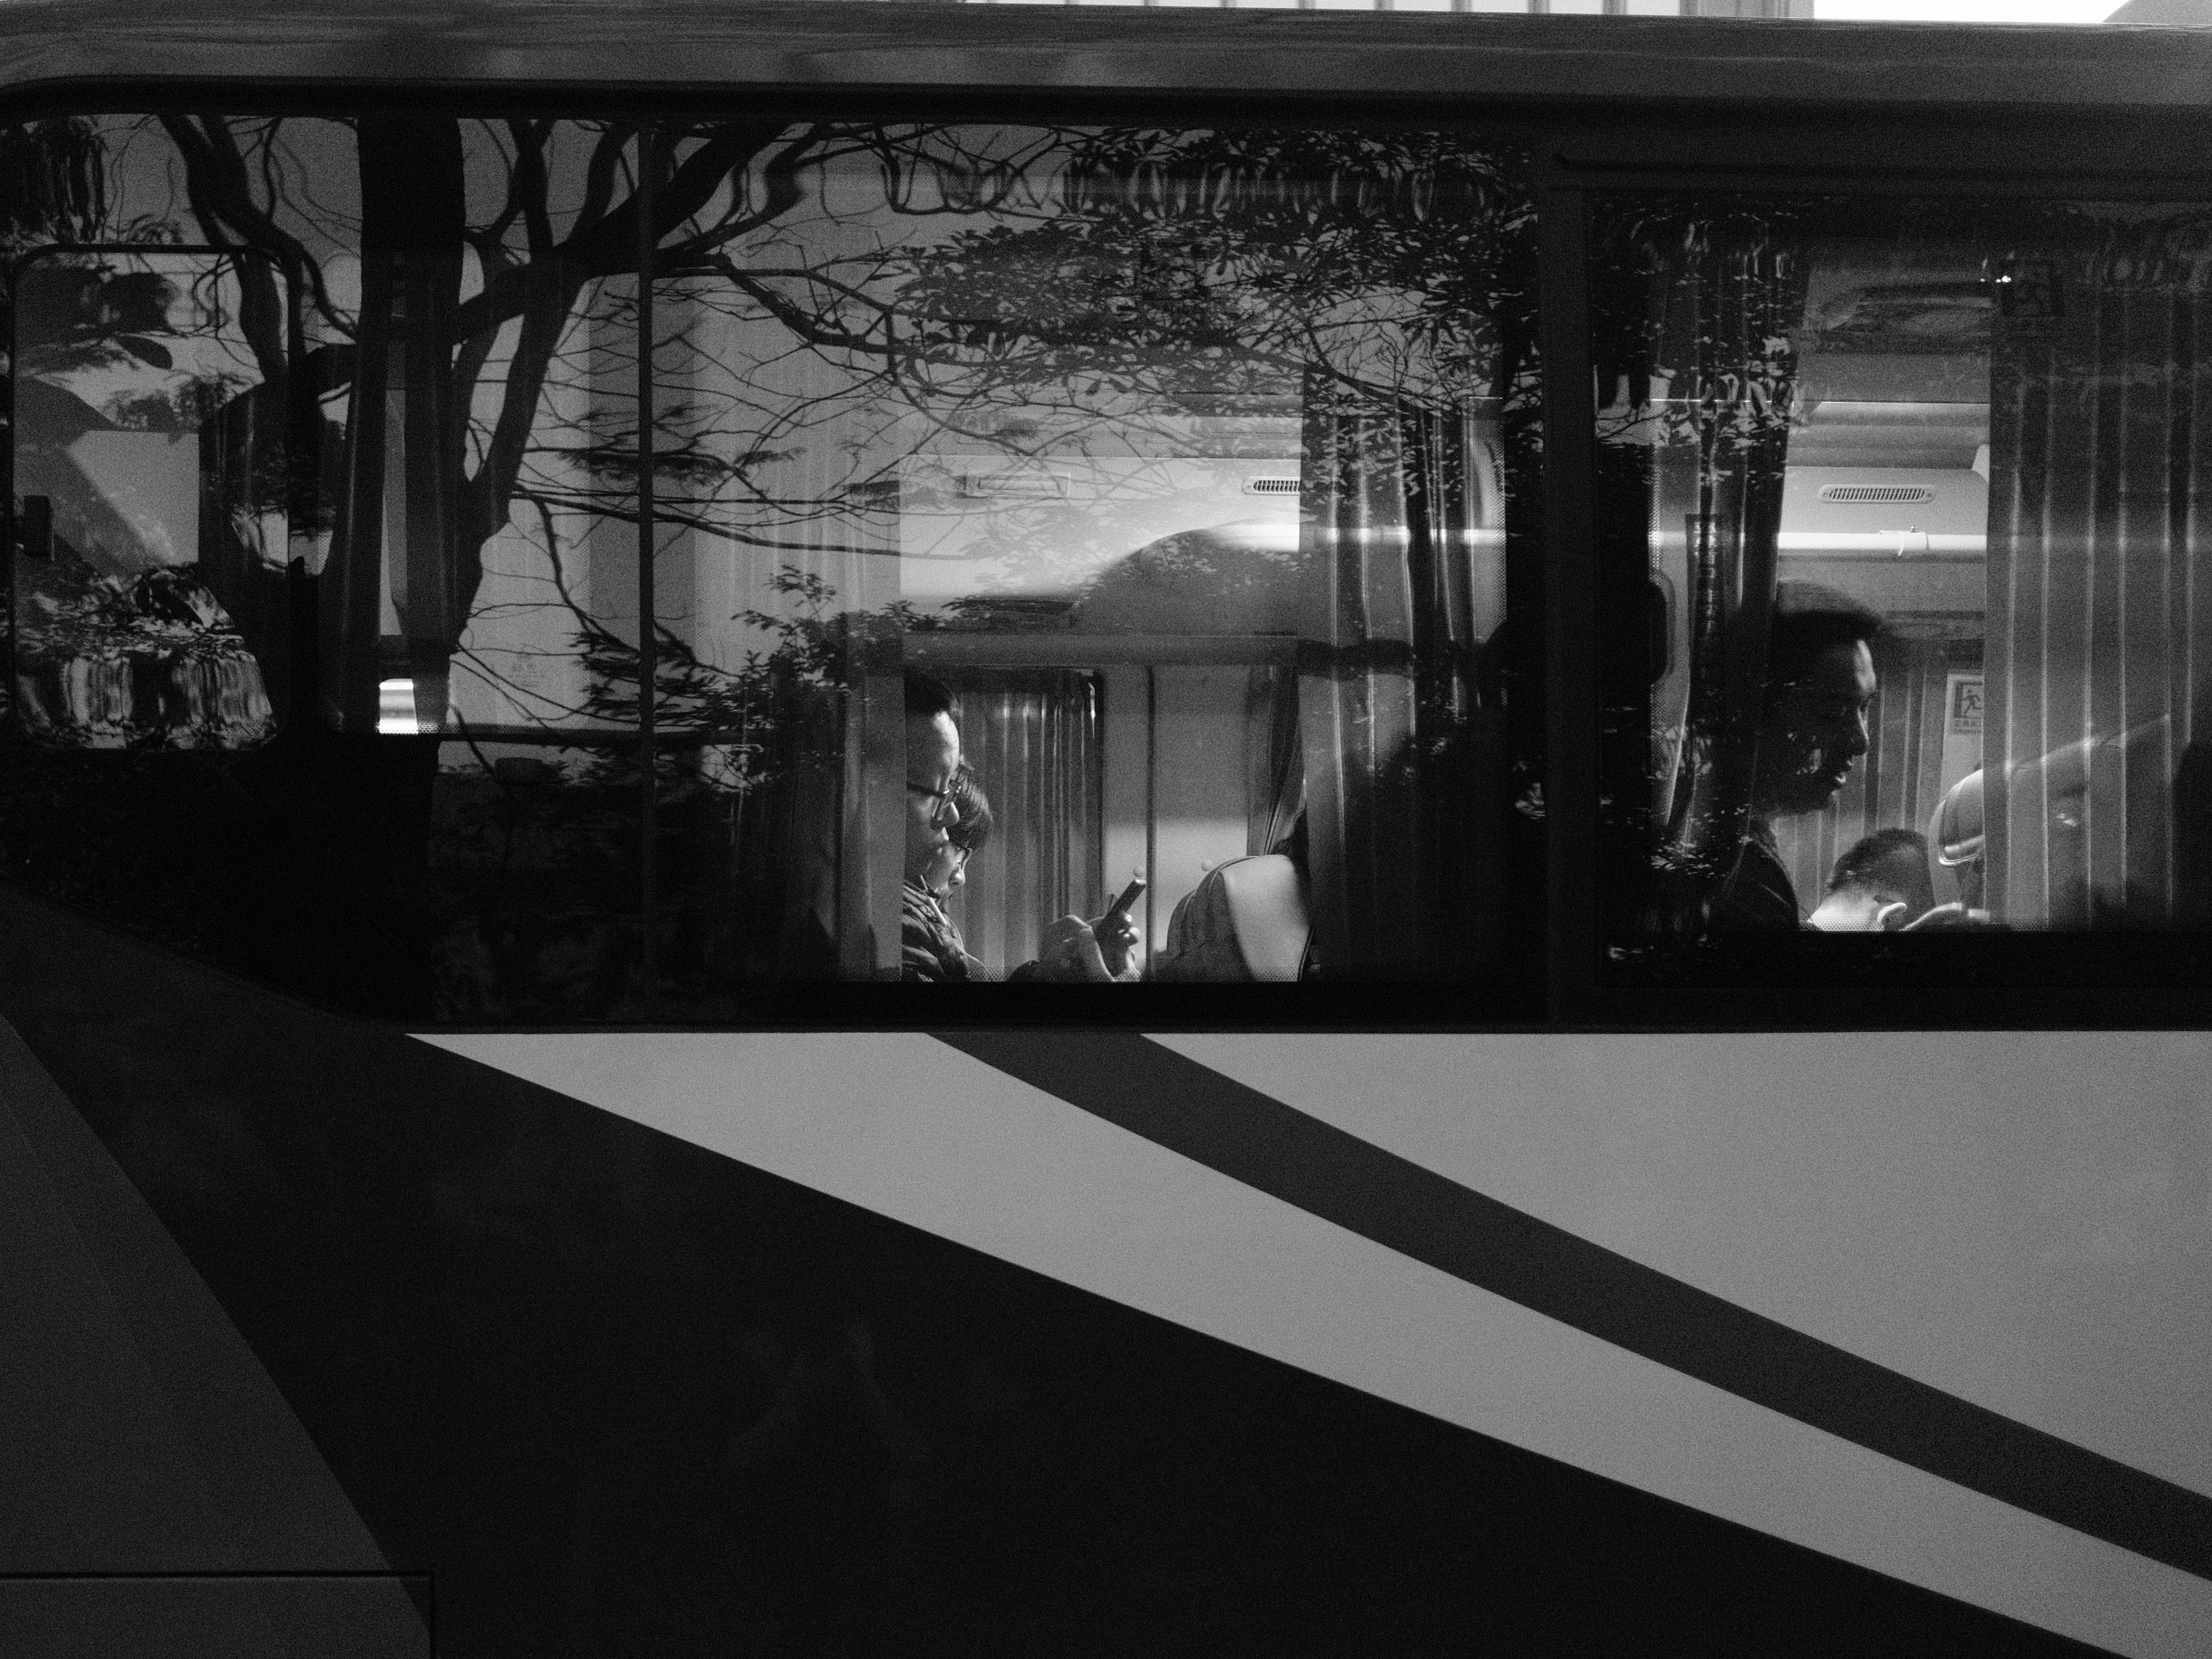 black and white photo of people riding bus